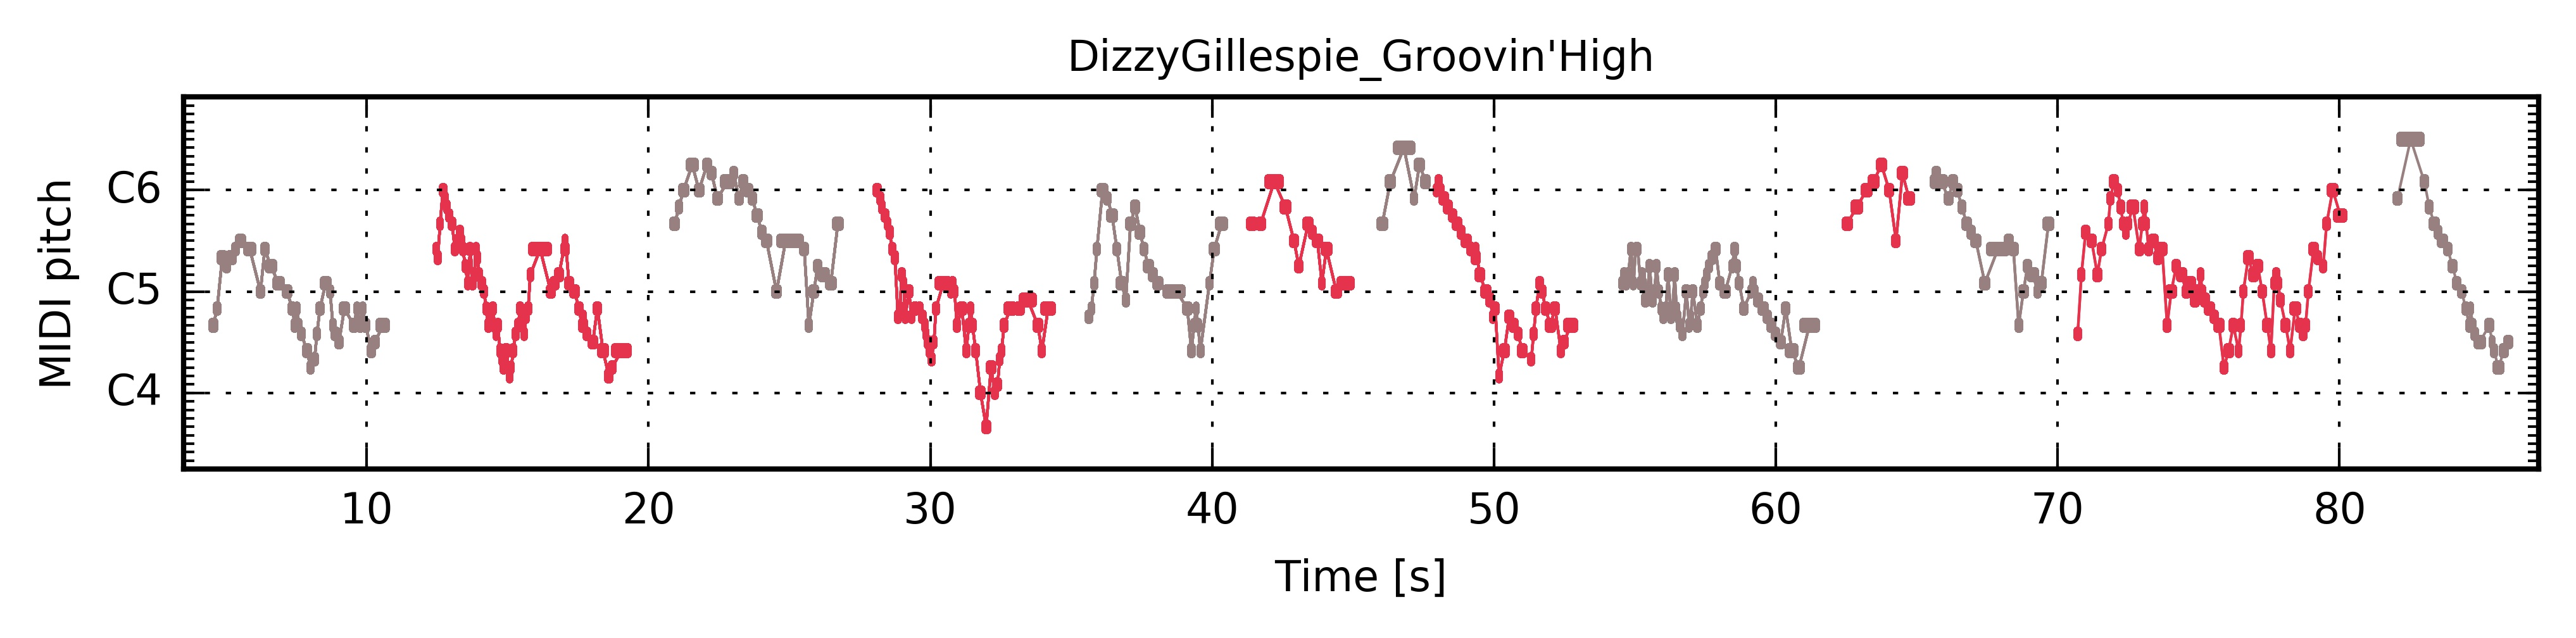 ../../_images/PianoRoll_DizzyGillespie_Groovin'High.jpg